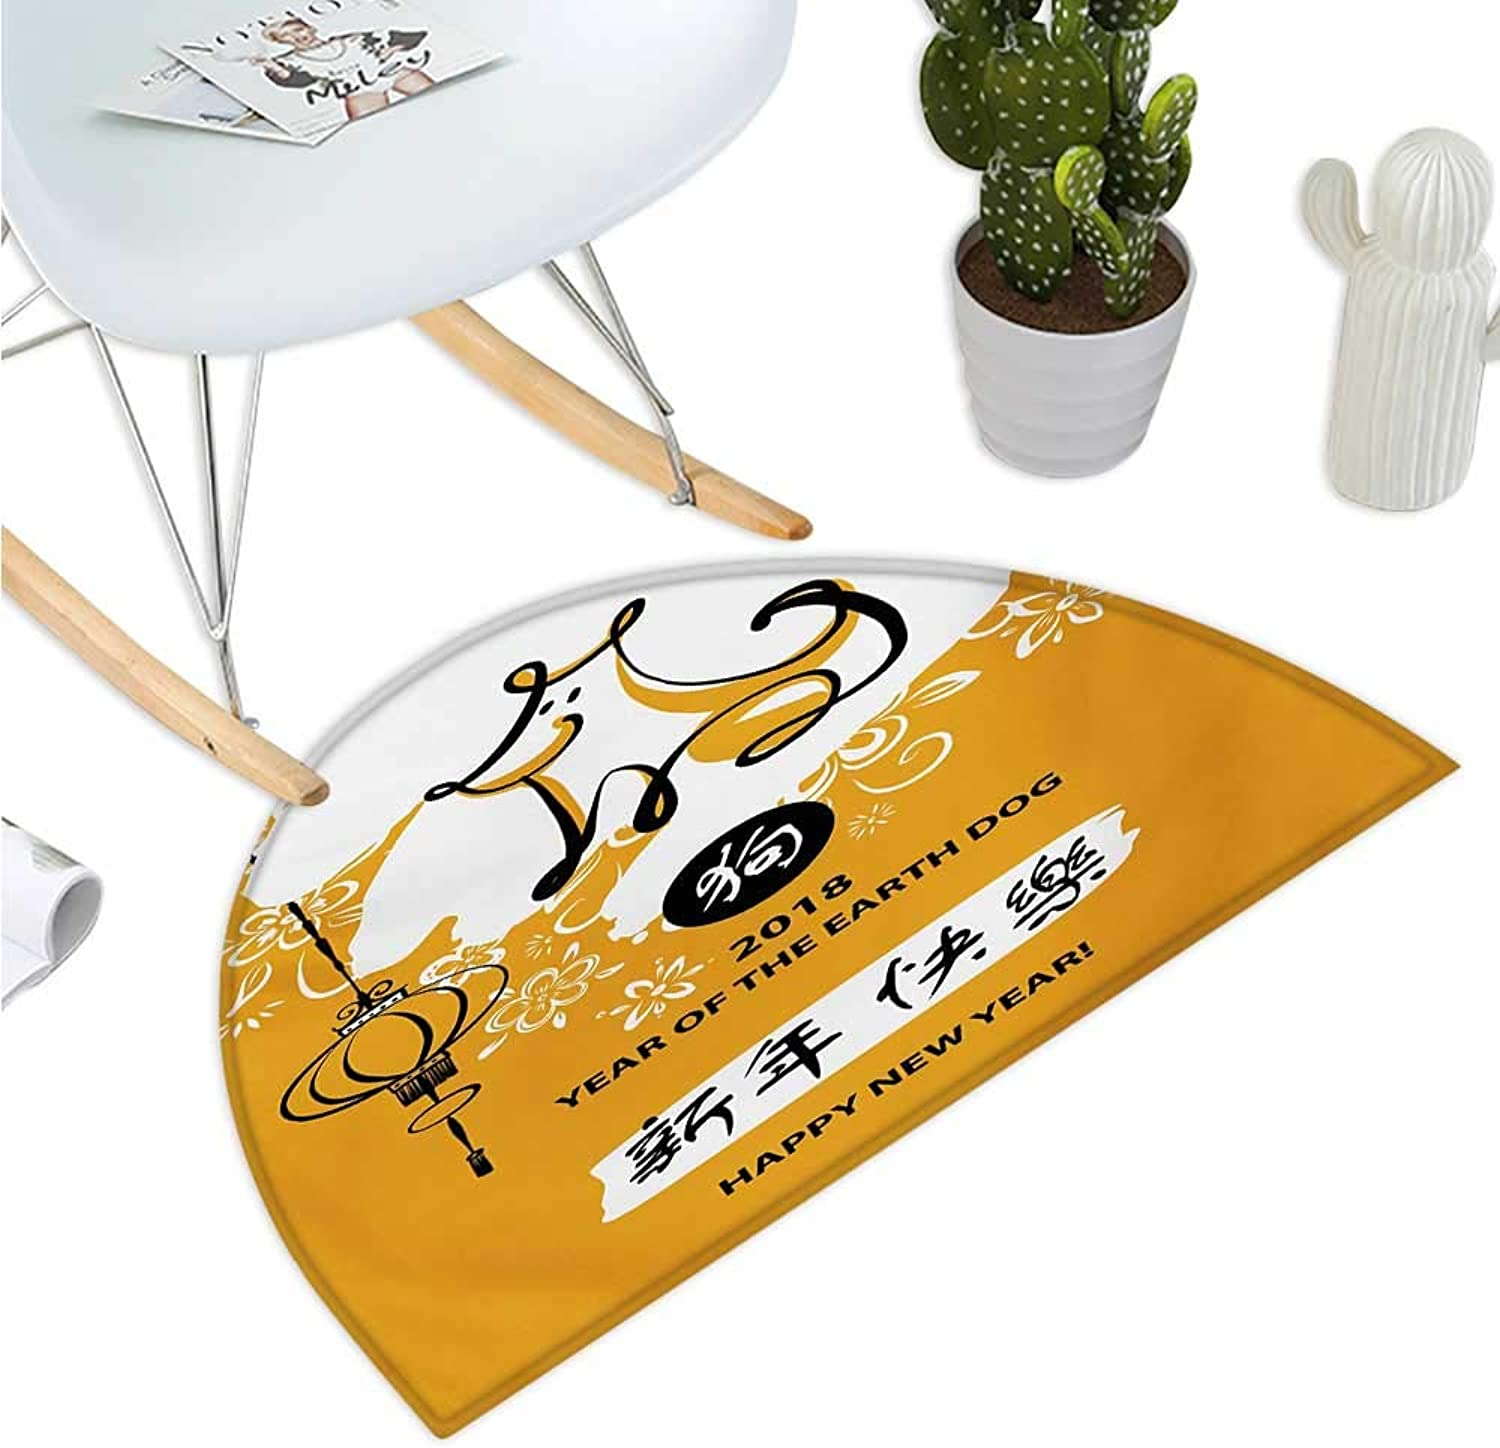 Year of The Dog Semicircle Doormat Hand Drawn Canine Design with Flower Sketch on Warm colord Backdrop Halfmoon doormats H 43.3  xD 64.9  orange and Black